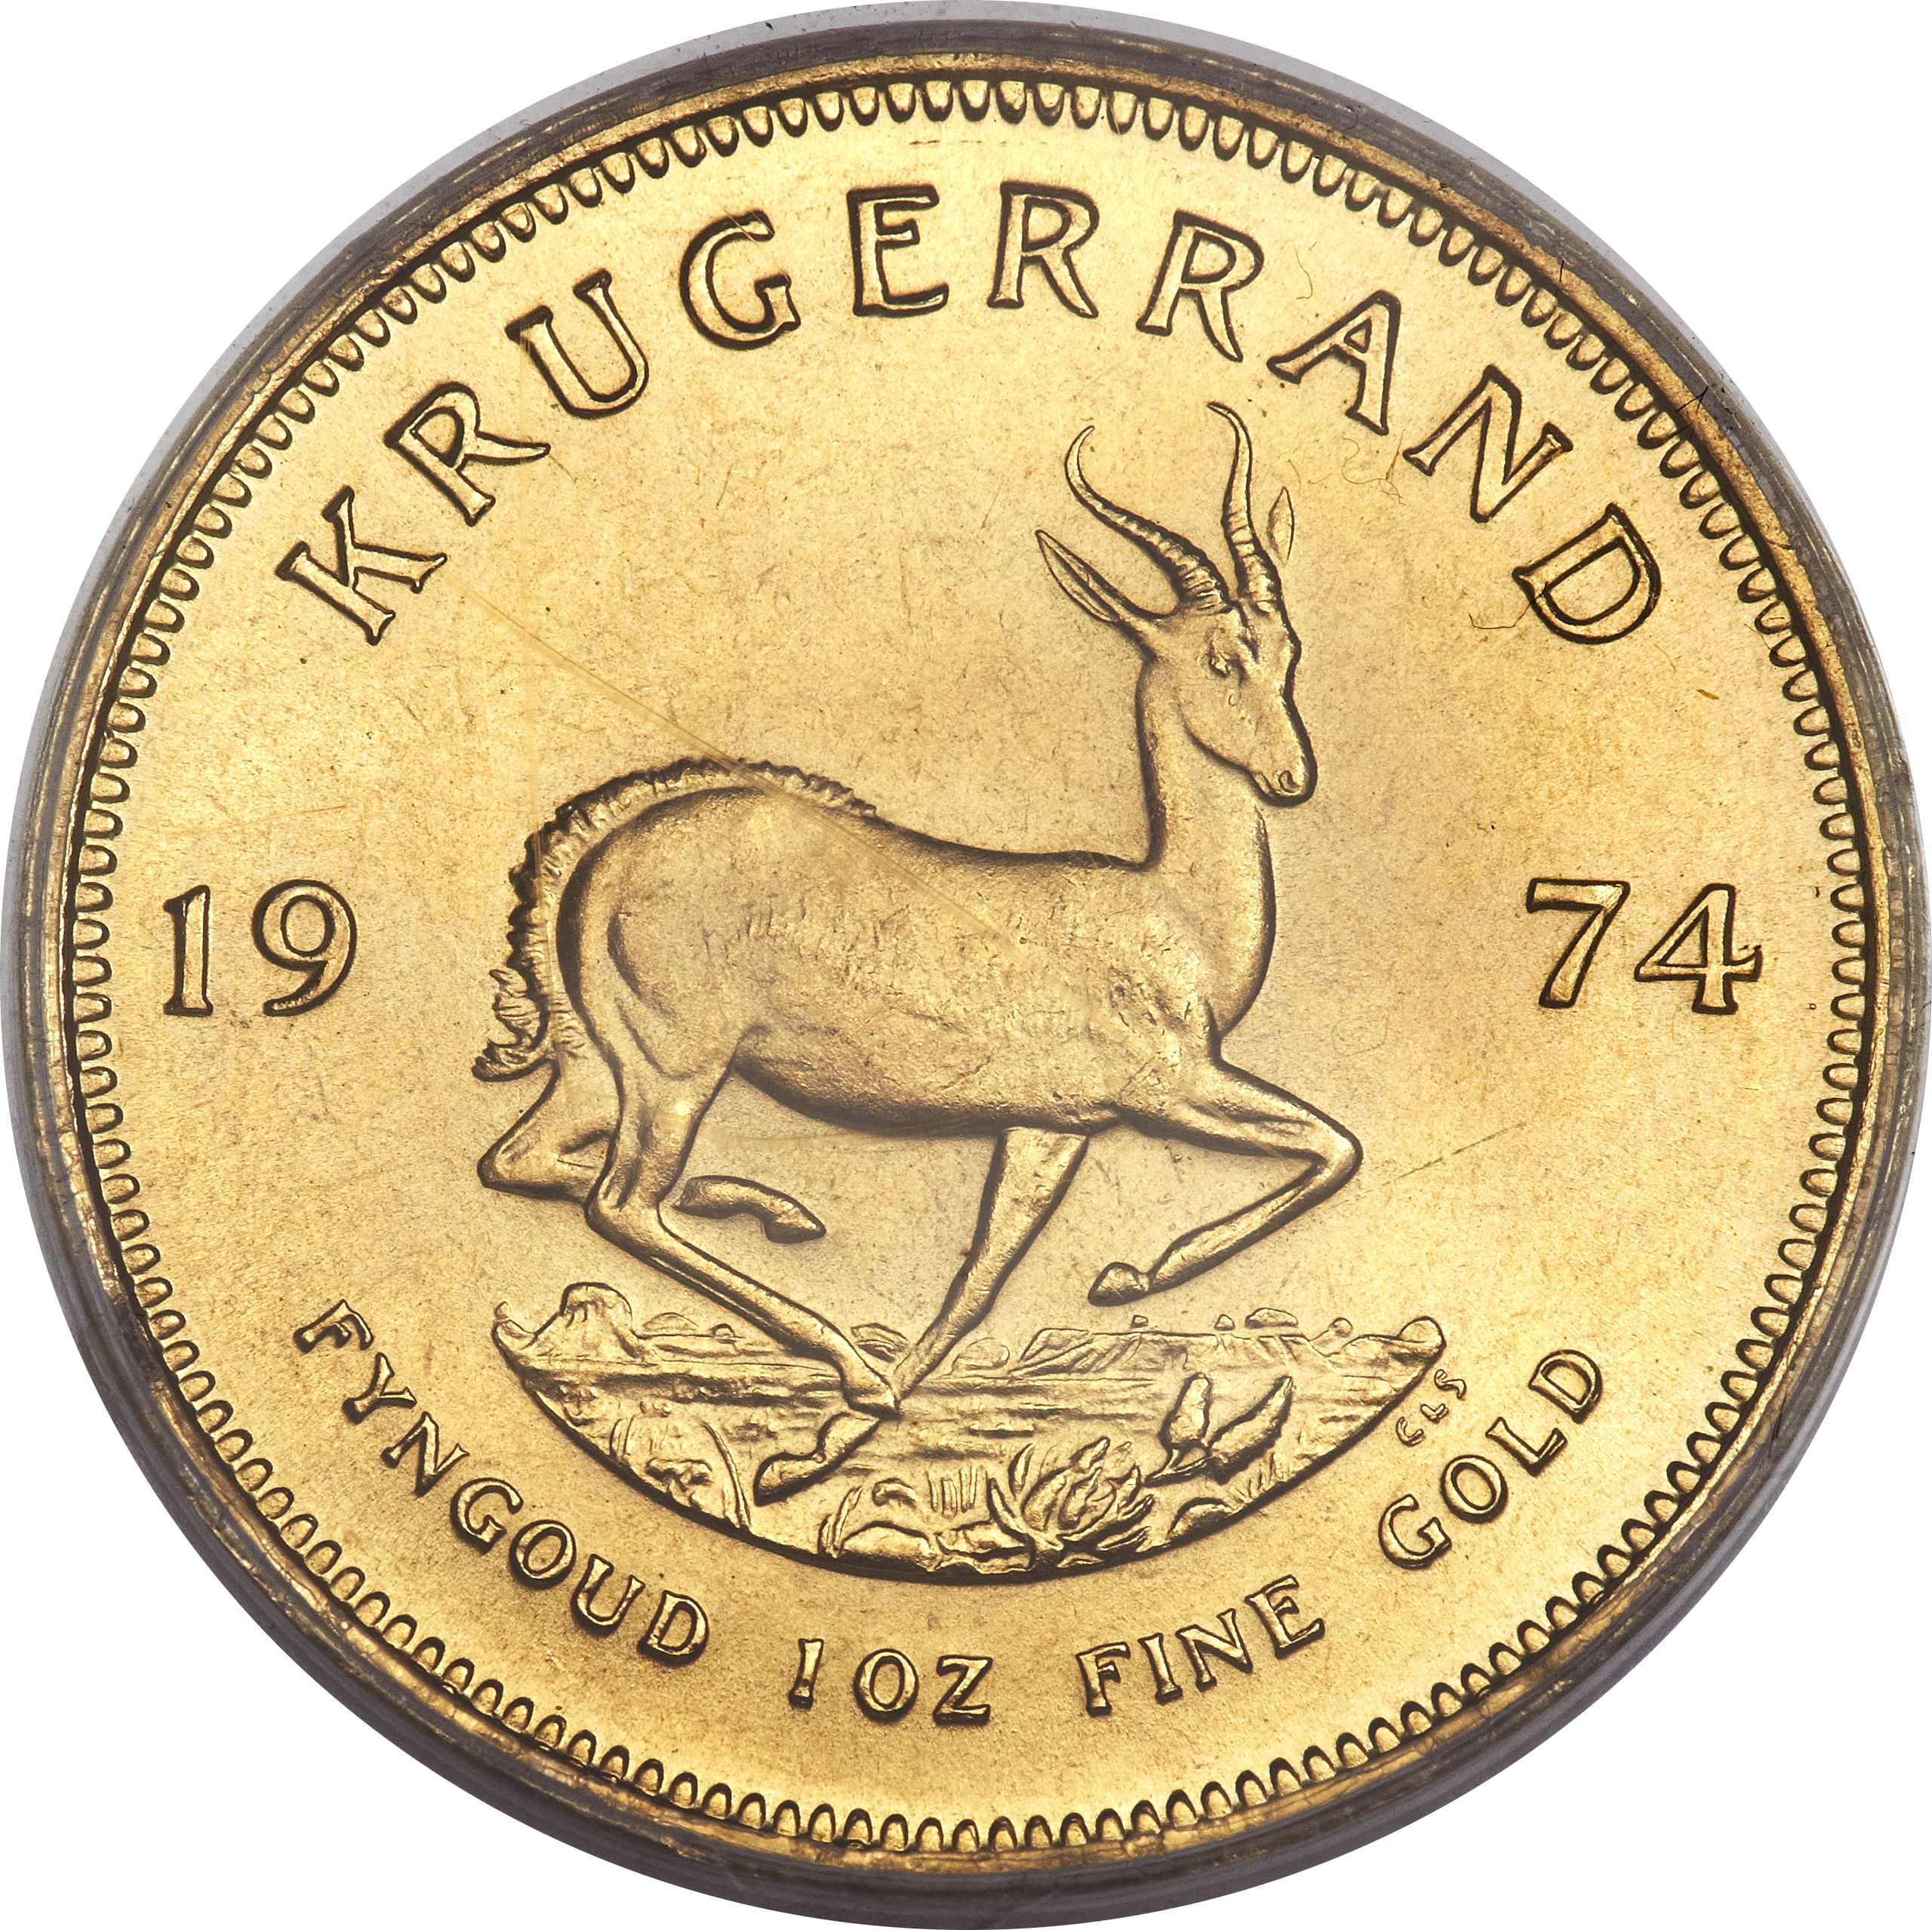 1 Ounce Krugerrand South Africa Numista